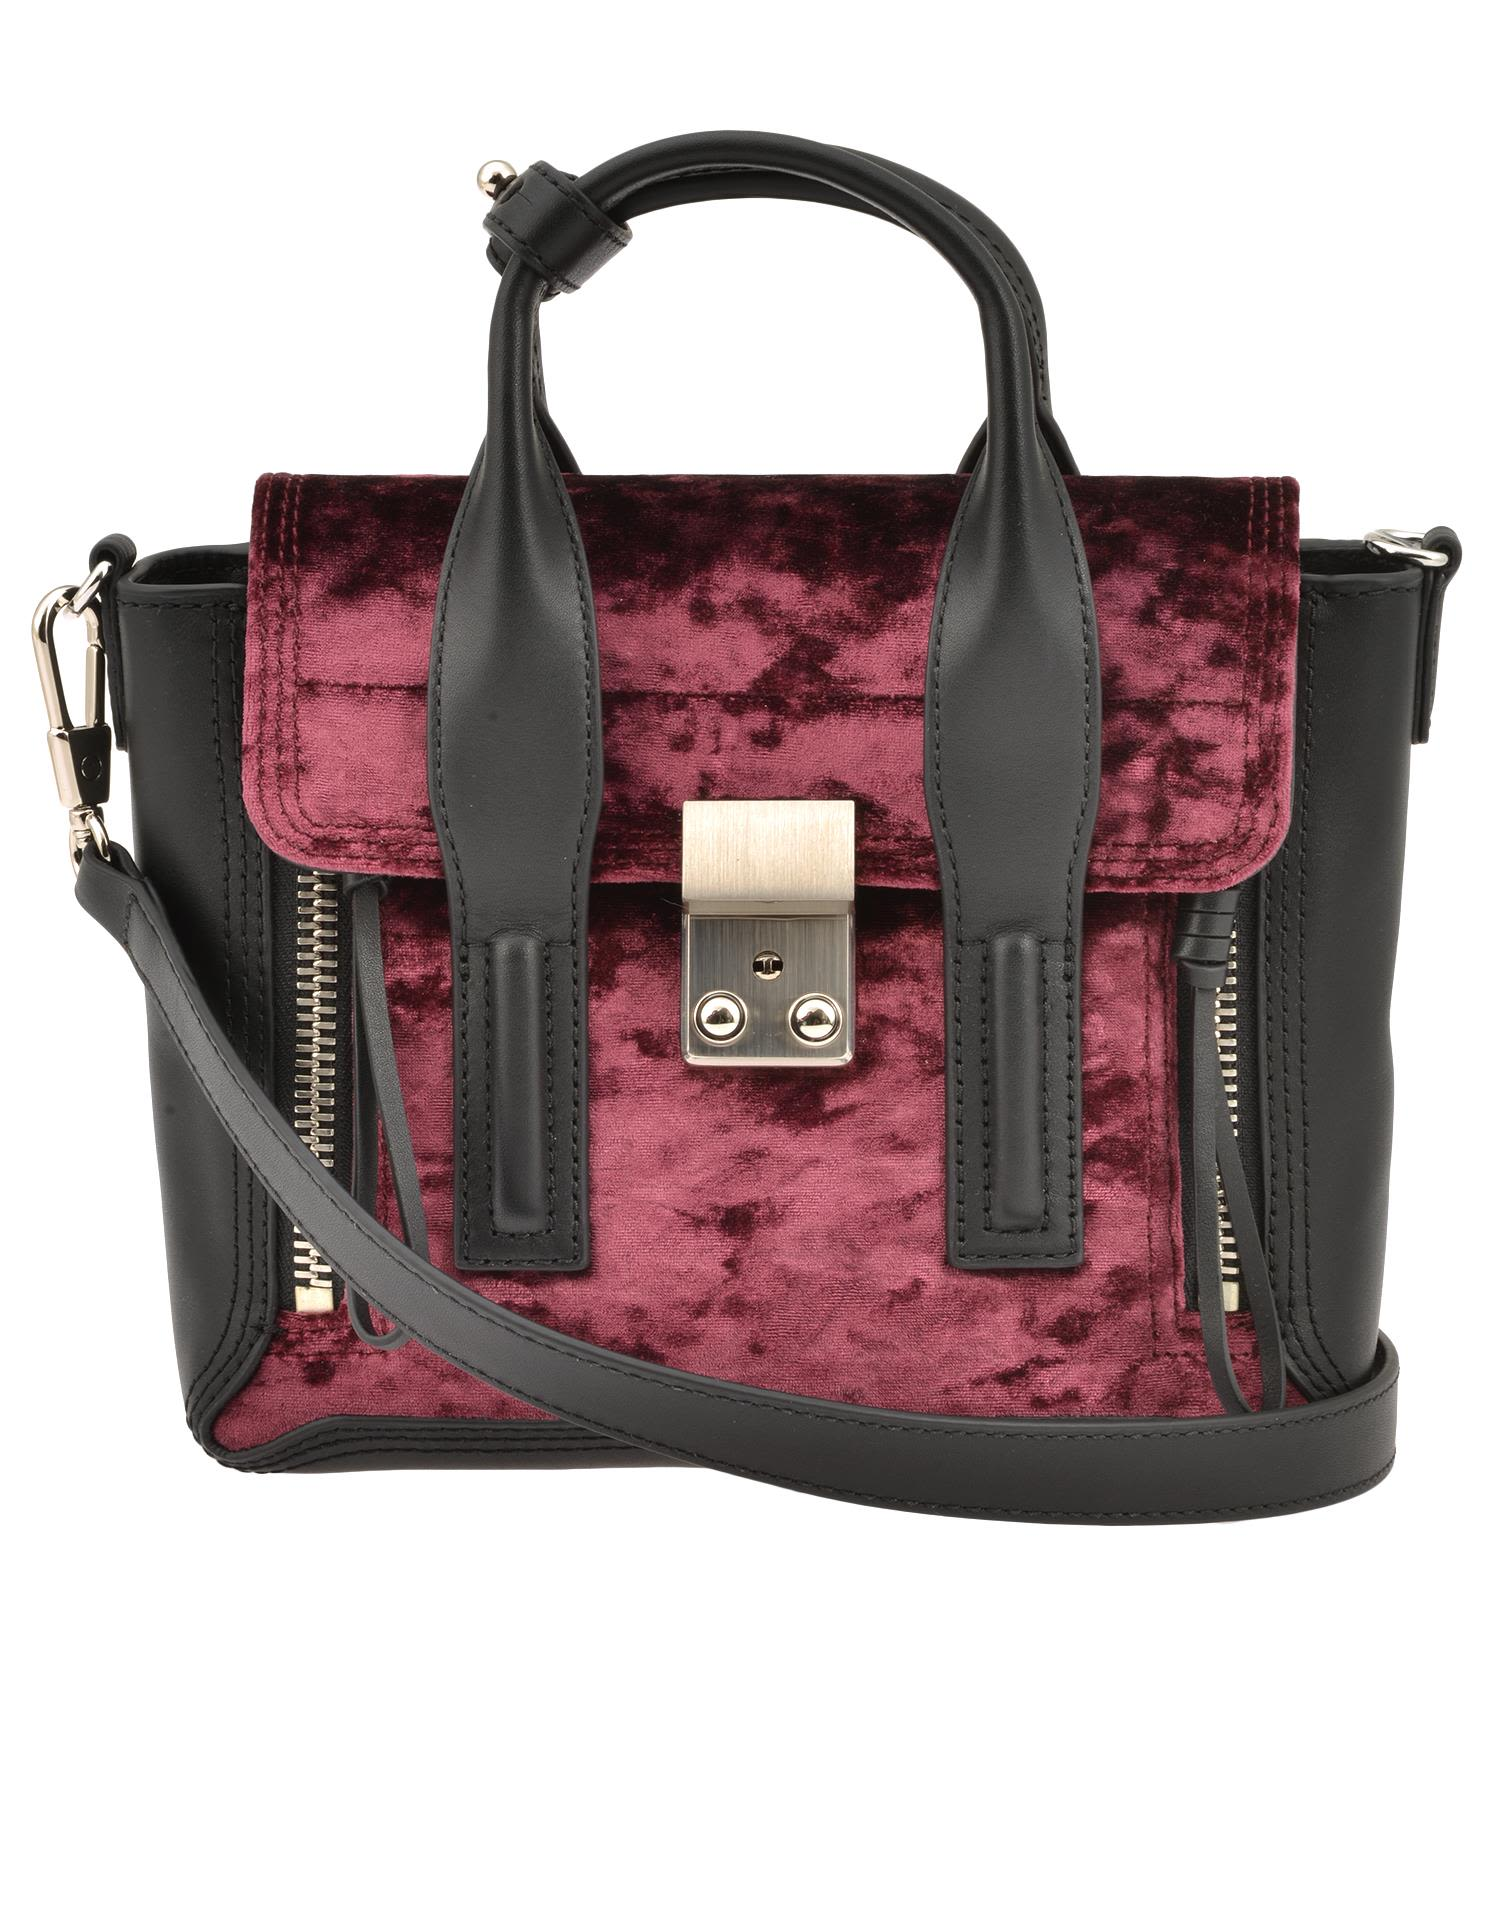 3.1 Phillip Lim Pashli Mini Satchel In Syrah  30d010803